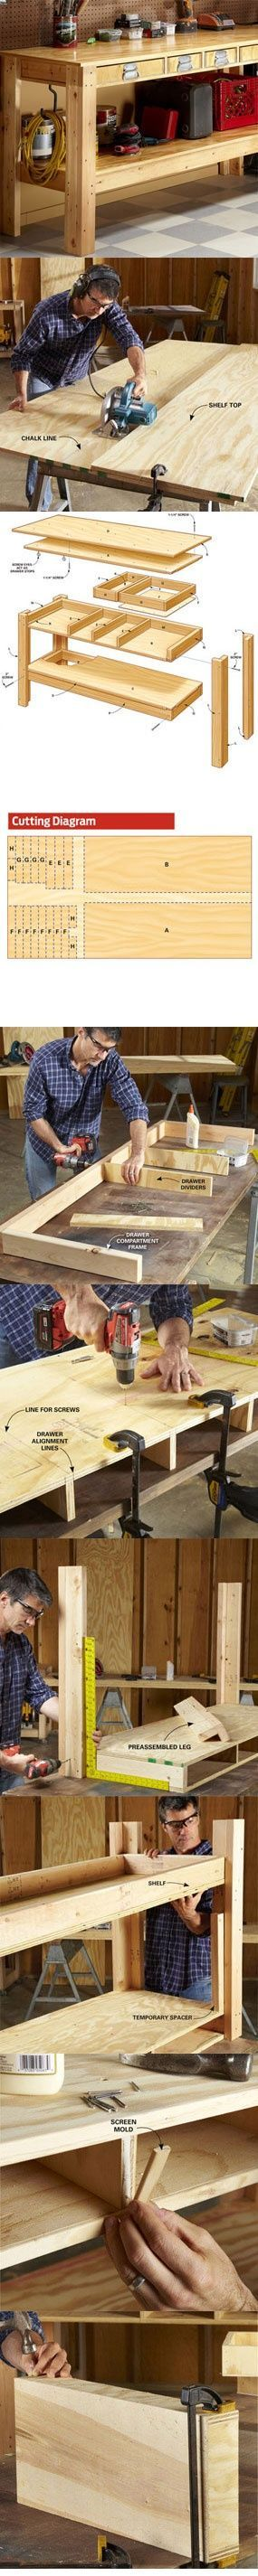 Use this simple workbench plan to build a sturdy, tough workbench that'll last for decades.